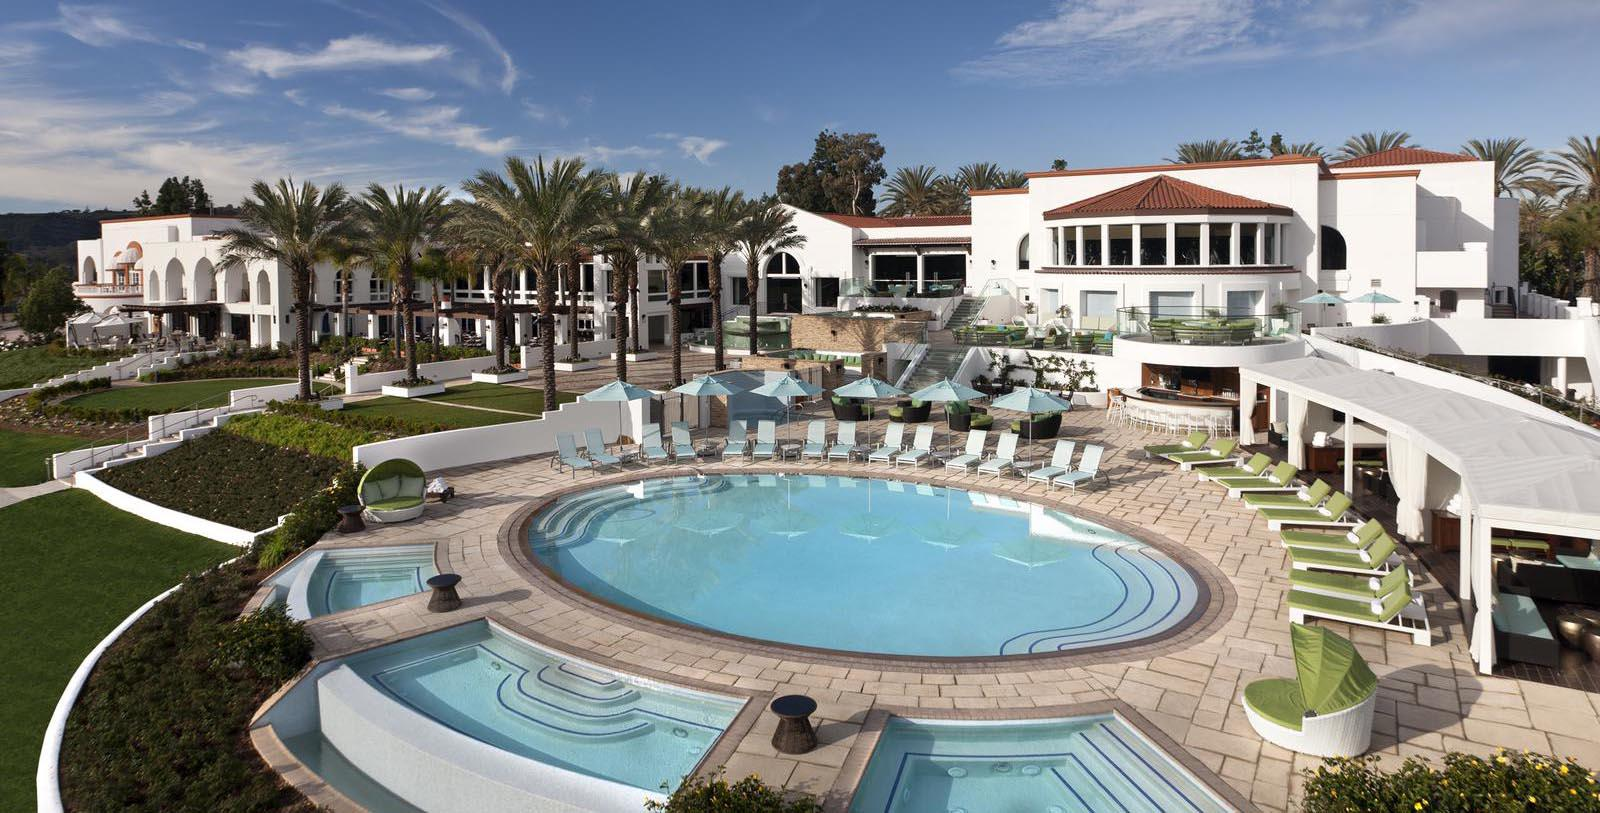 Image of Hotel Exterior & Outdoor Pool, Omni La Costa Resort & Spa, Carlsbad, California, 1965, Member of Historic Hotels of America, Special Offers, Discounted Rates, Families, Romantic Escape, Honeymoons, Anniversaries, Reunions